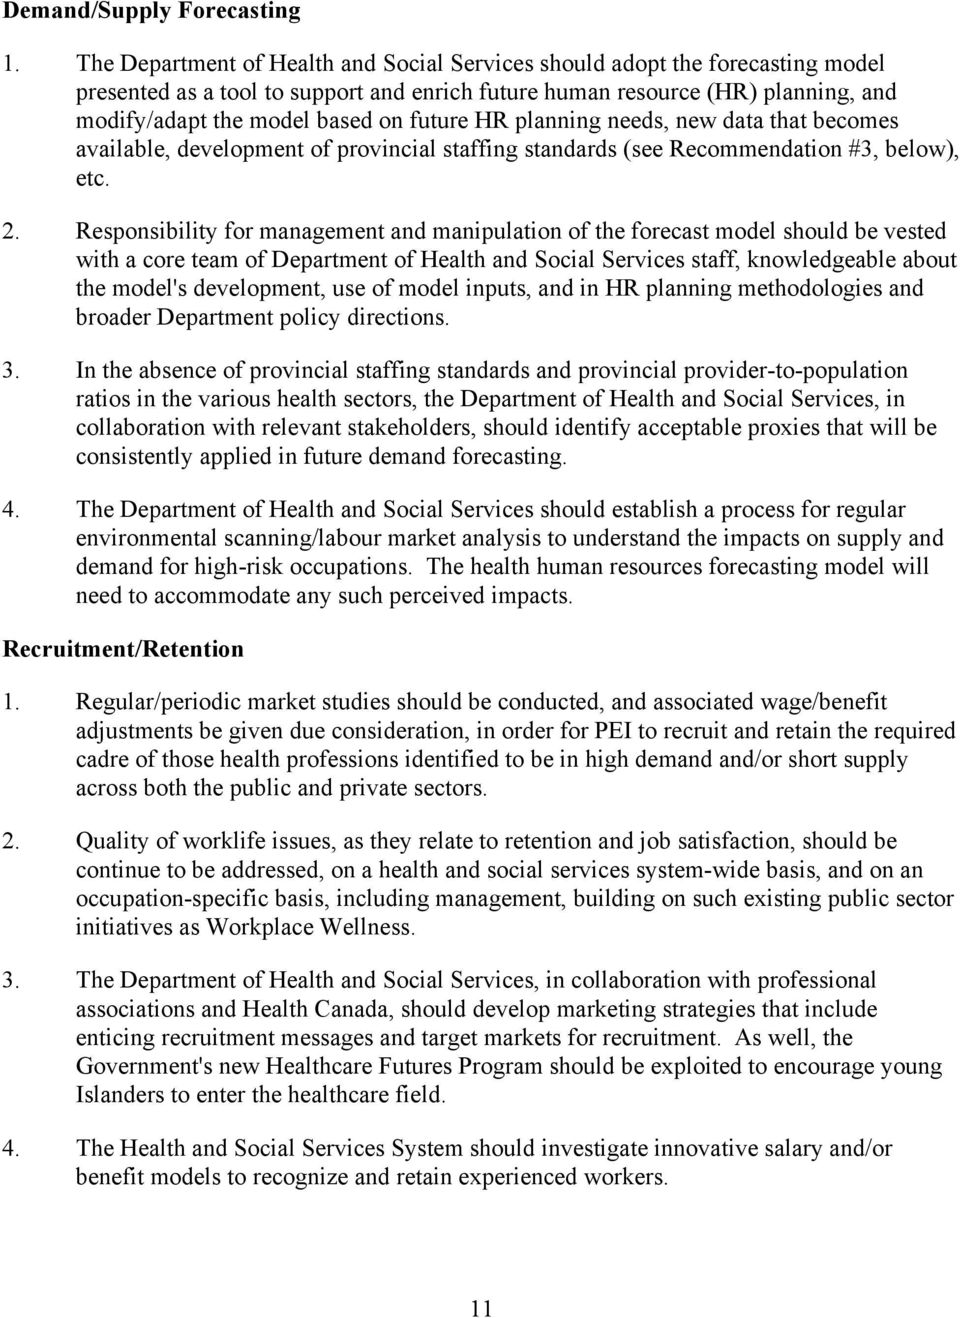 future HR planning needs, new data that becomes available, development of provincial staffing standards (see Recommendation #3, below), etc. 2.